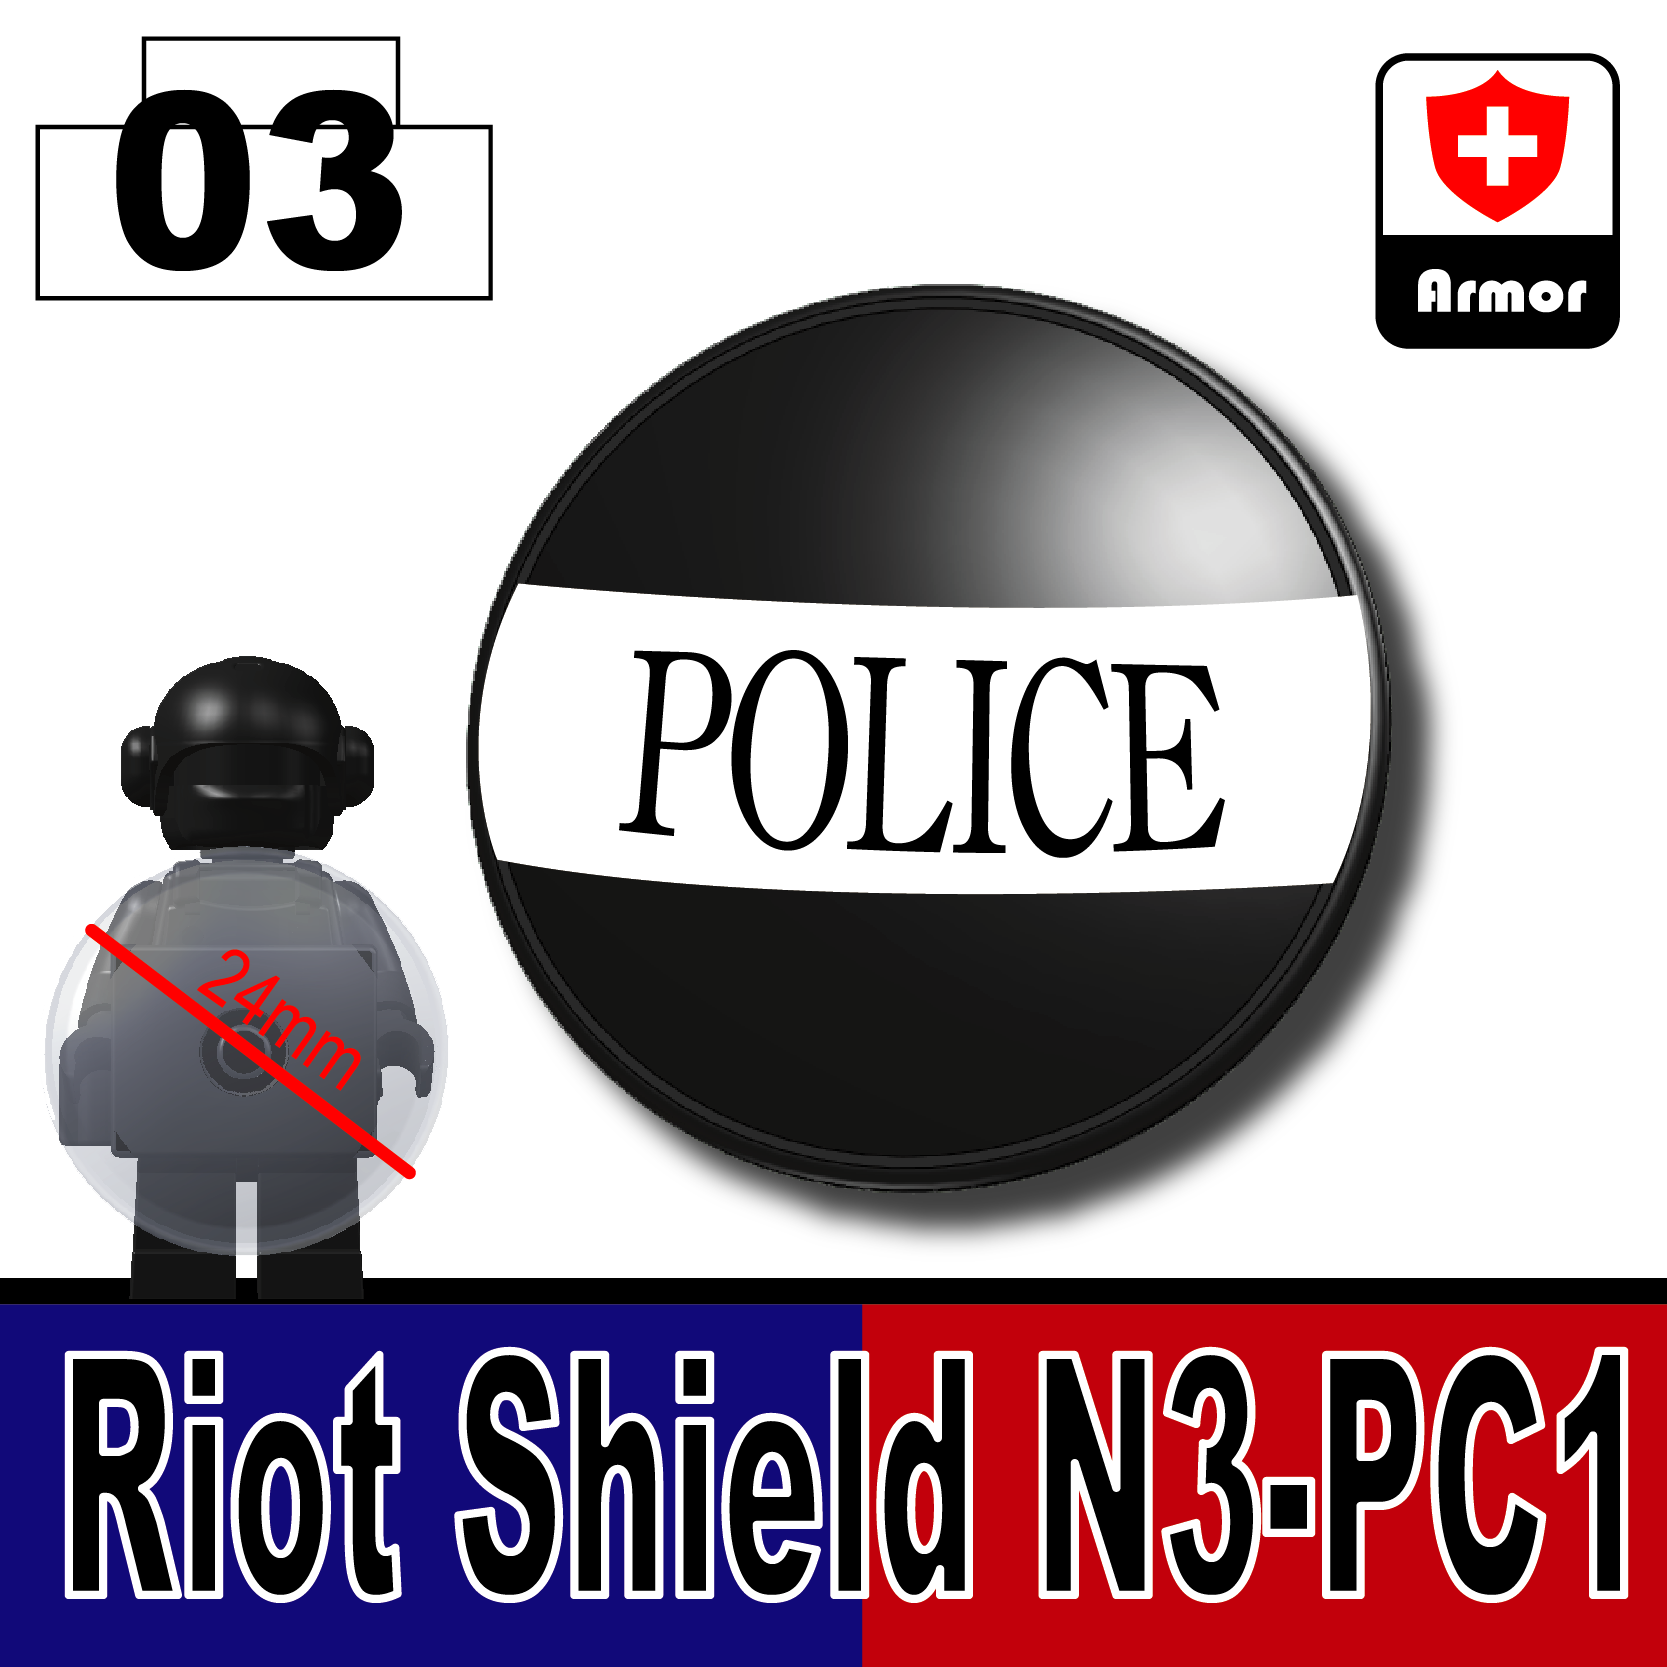 Riot Shield N3-PC1